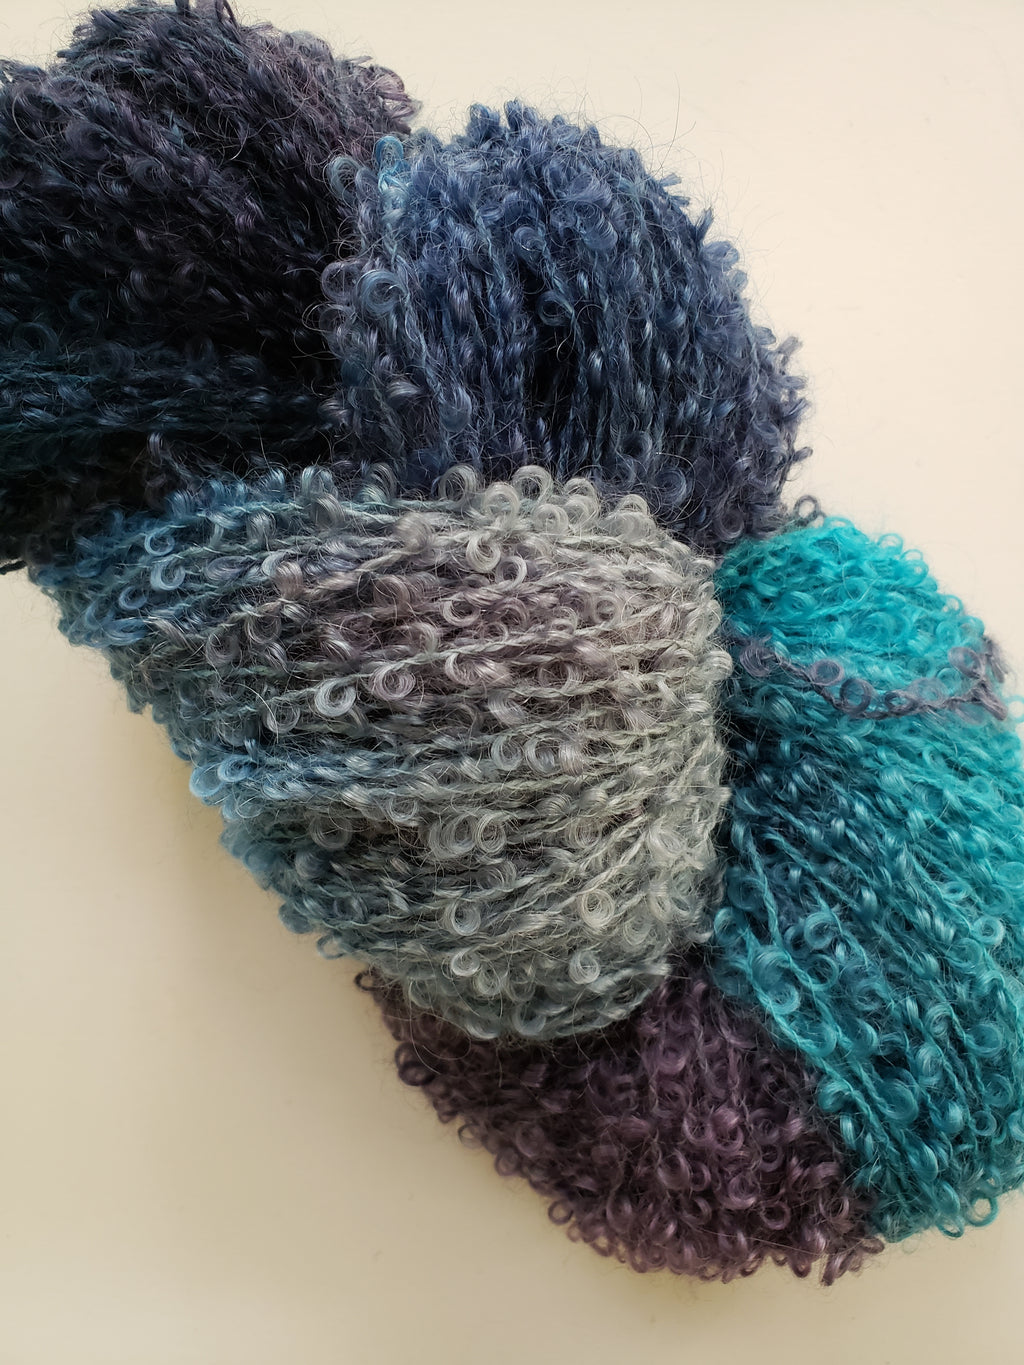 FROZEN OCEAN  -  Wool Curly Locks - Hand Dyed Textured Yarn - Landscape Shades